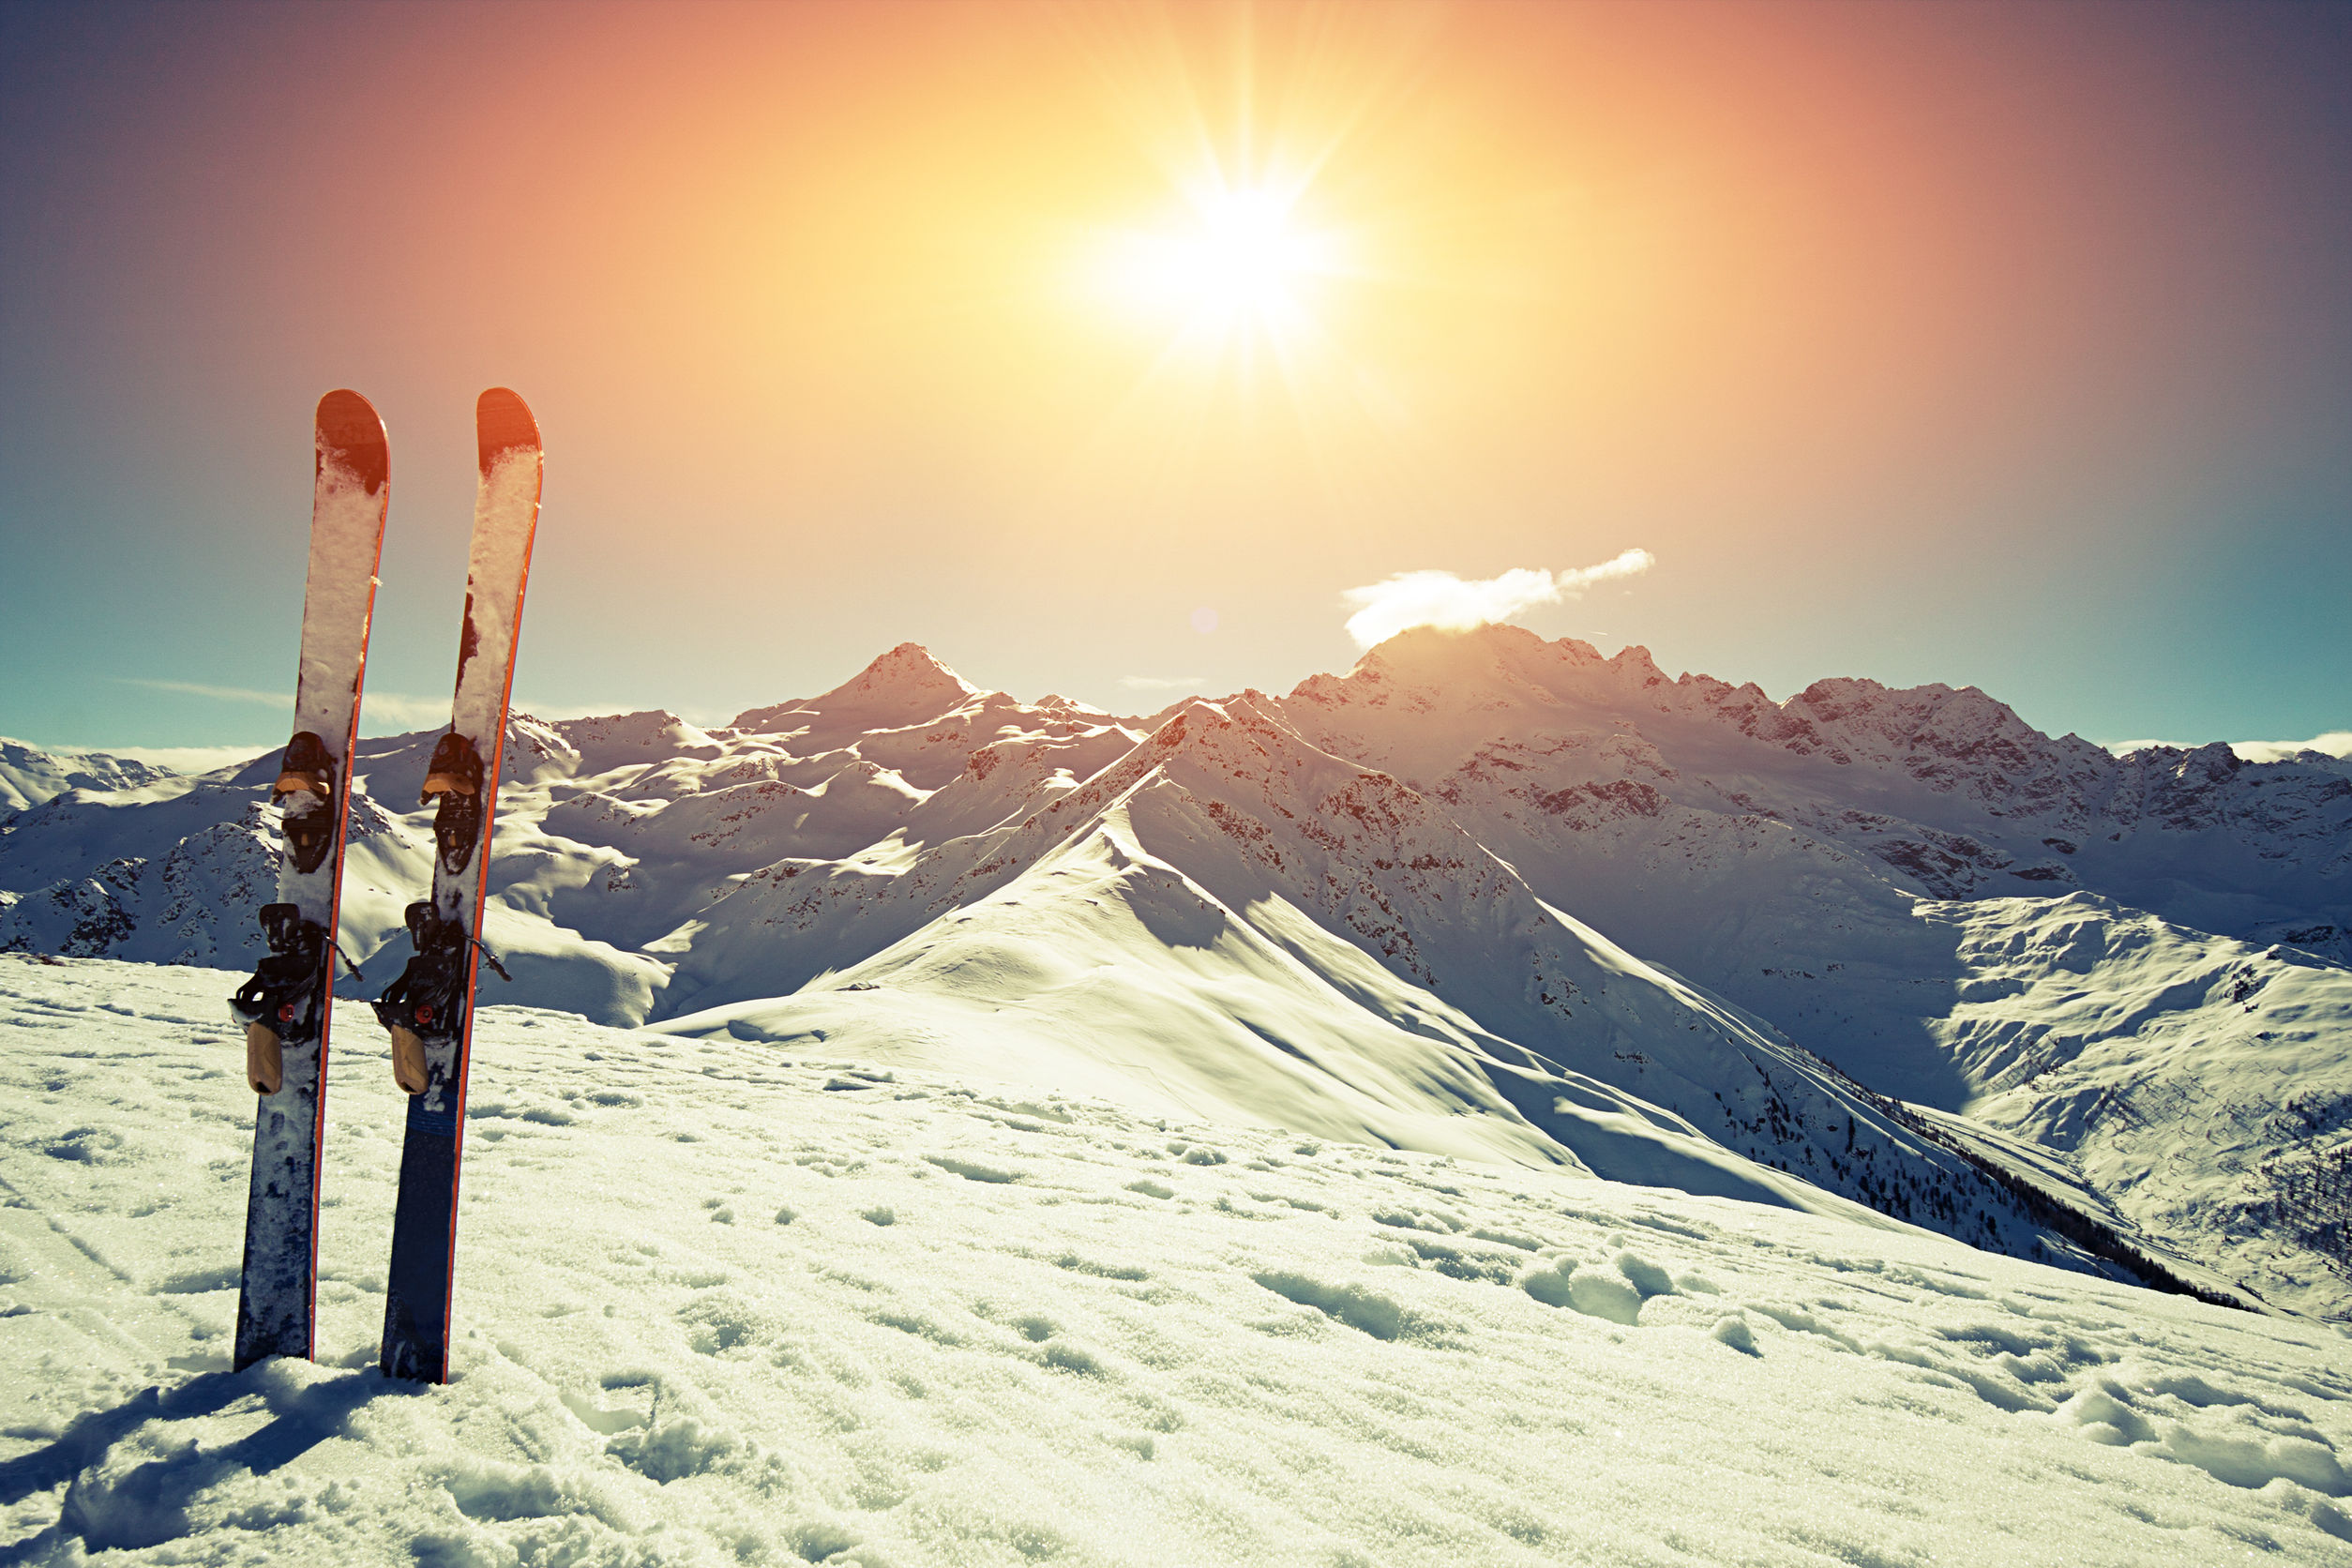 39476868 - skis in snow at mountains